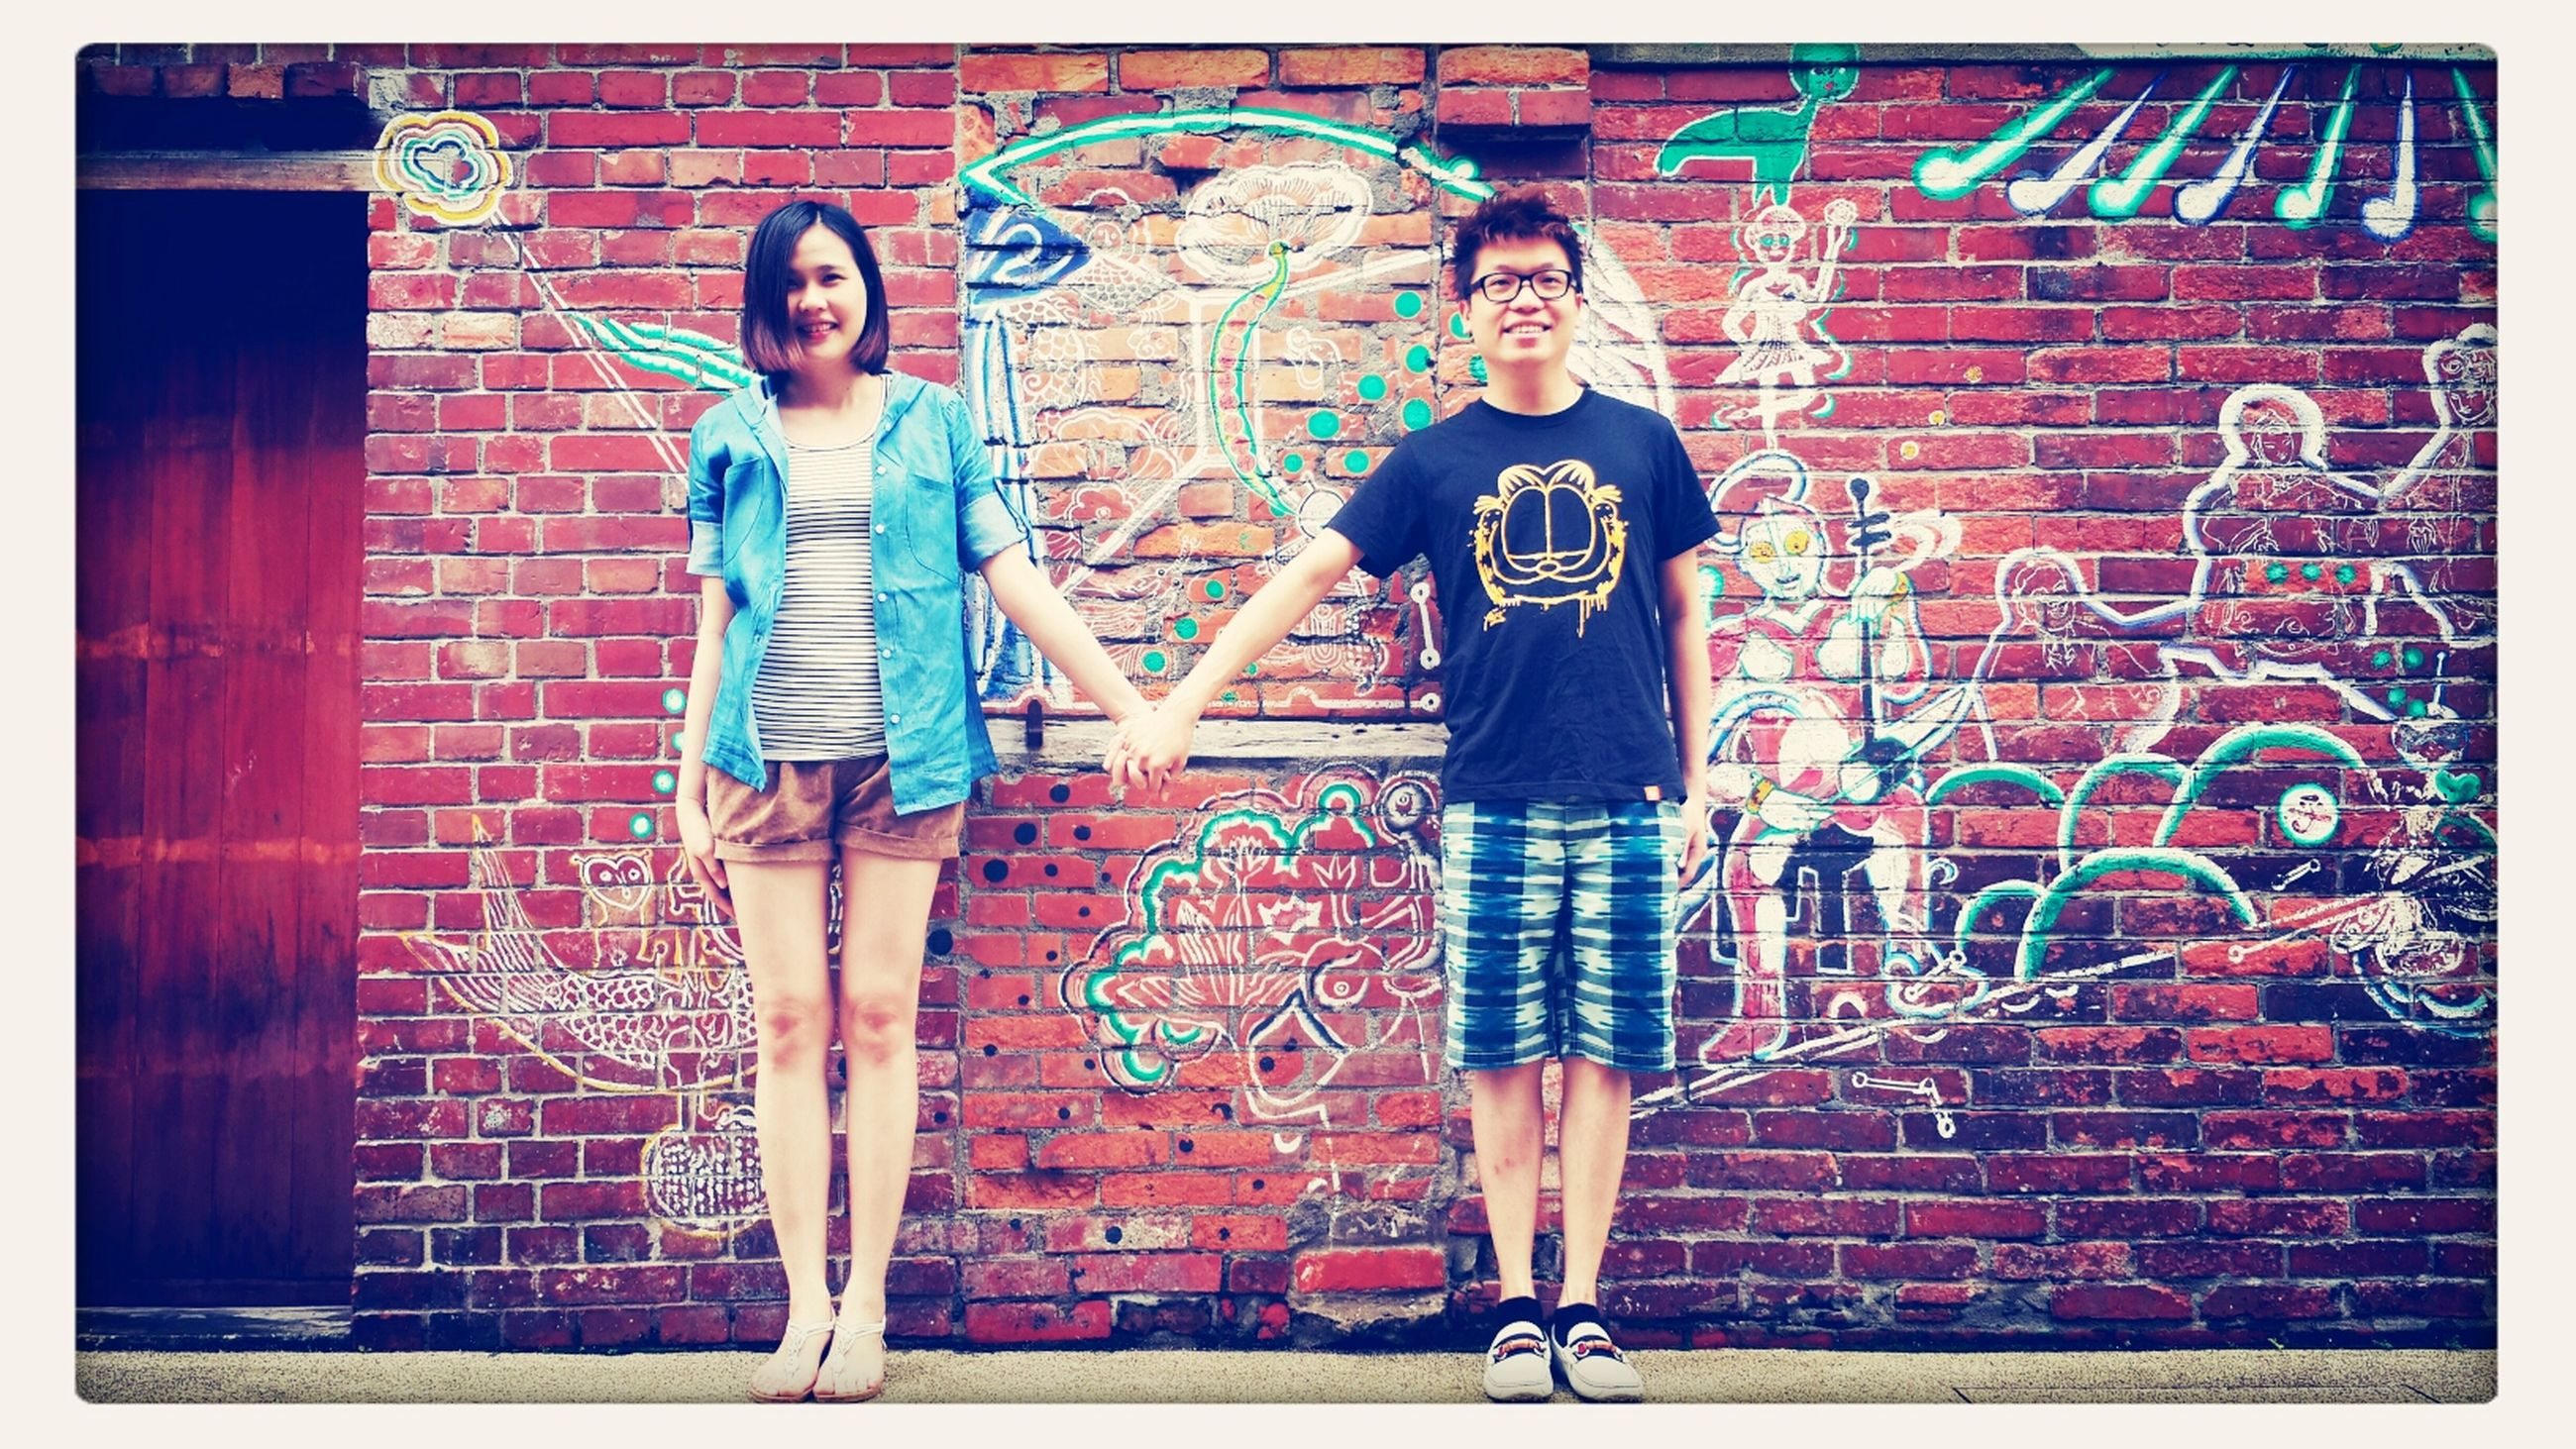 transfer print, auto post production filter, lifestyles, full length, standing, young adult, leisure activity, front view, casual clothing, person, wall - building feature, graffiti, young women, looking at camera, portrait, three quarter length, built structure